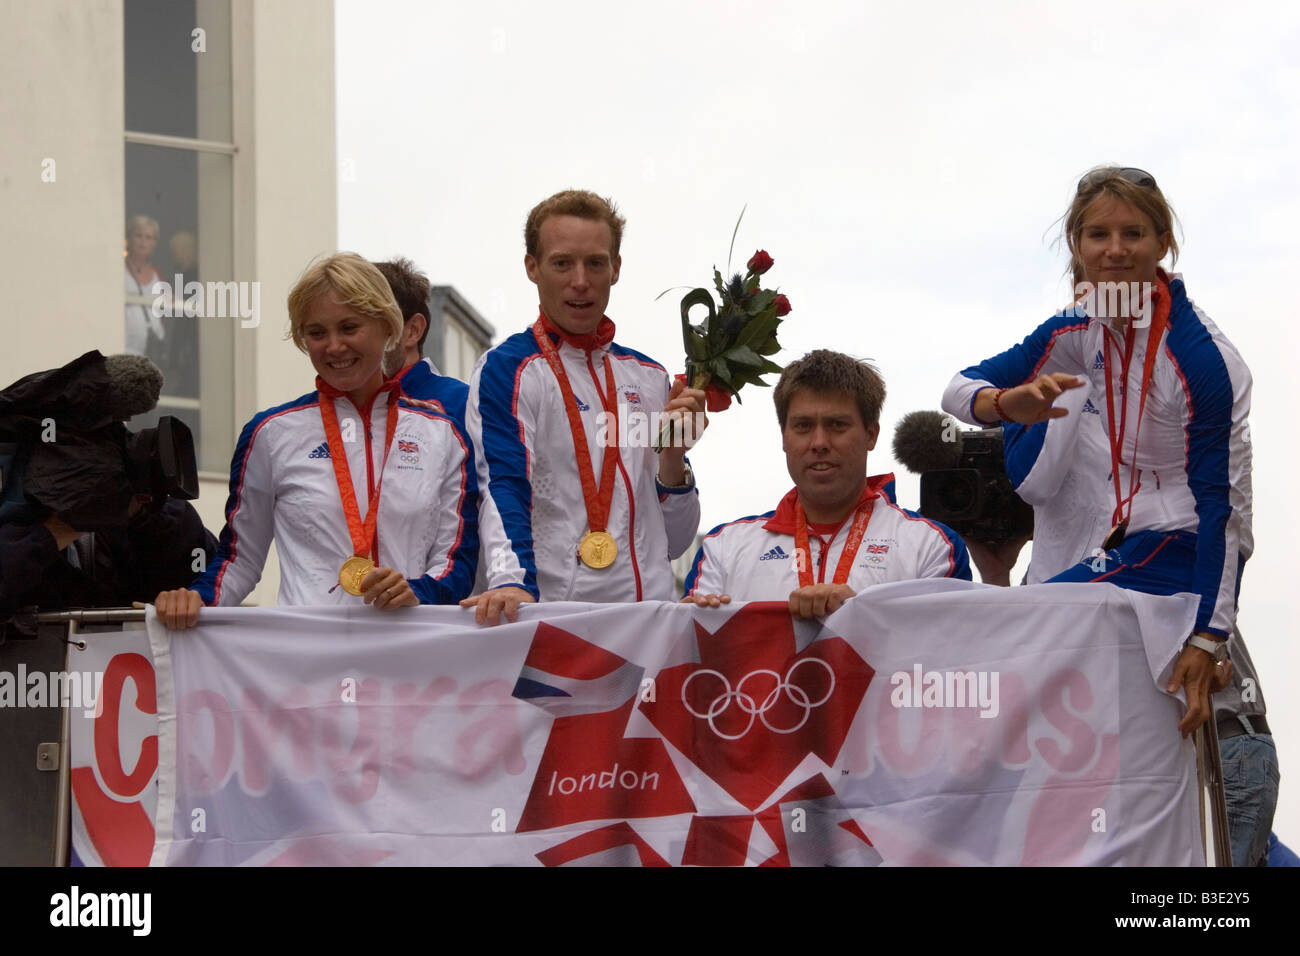 2008 Olympic gold medallists Sarah Ayton, Paul Goodison, and Andrew Simpson with Saskia Clark - Stock Image